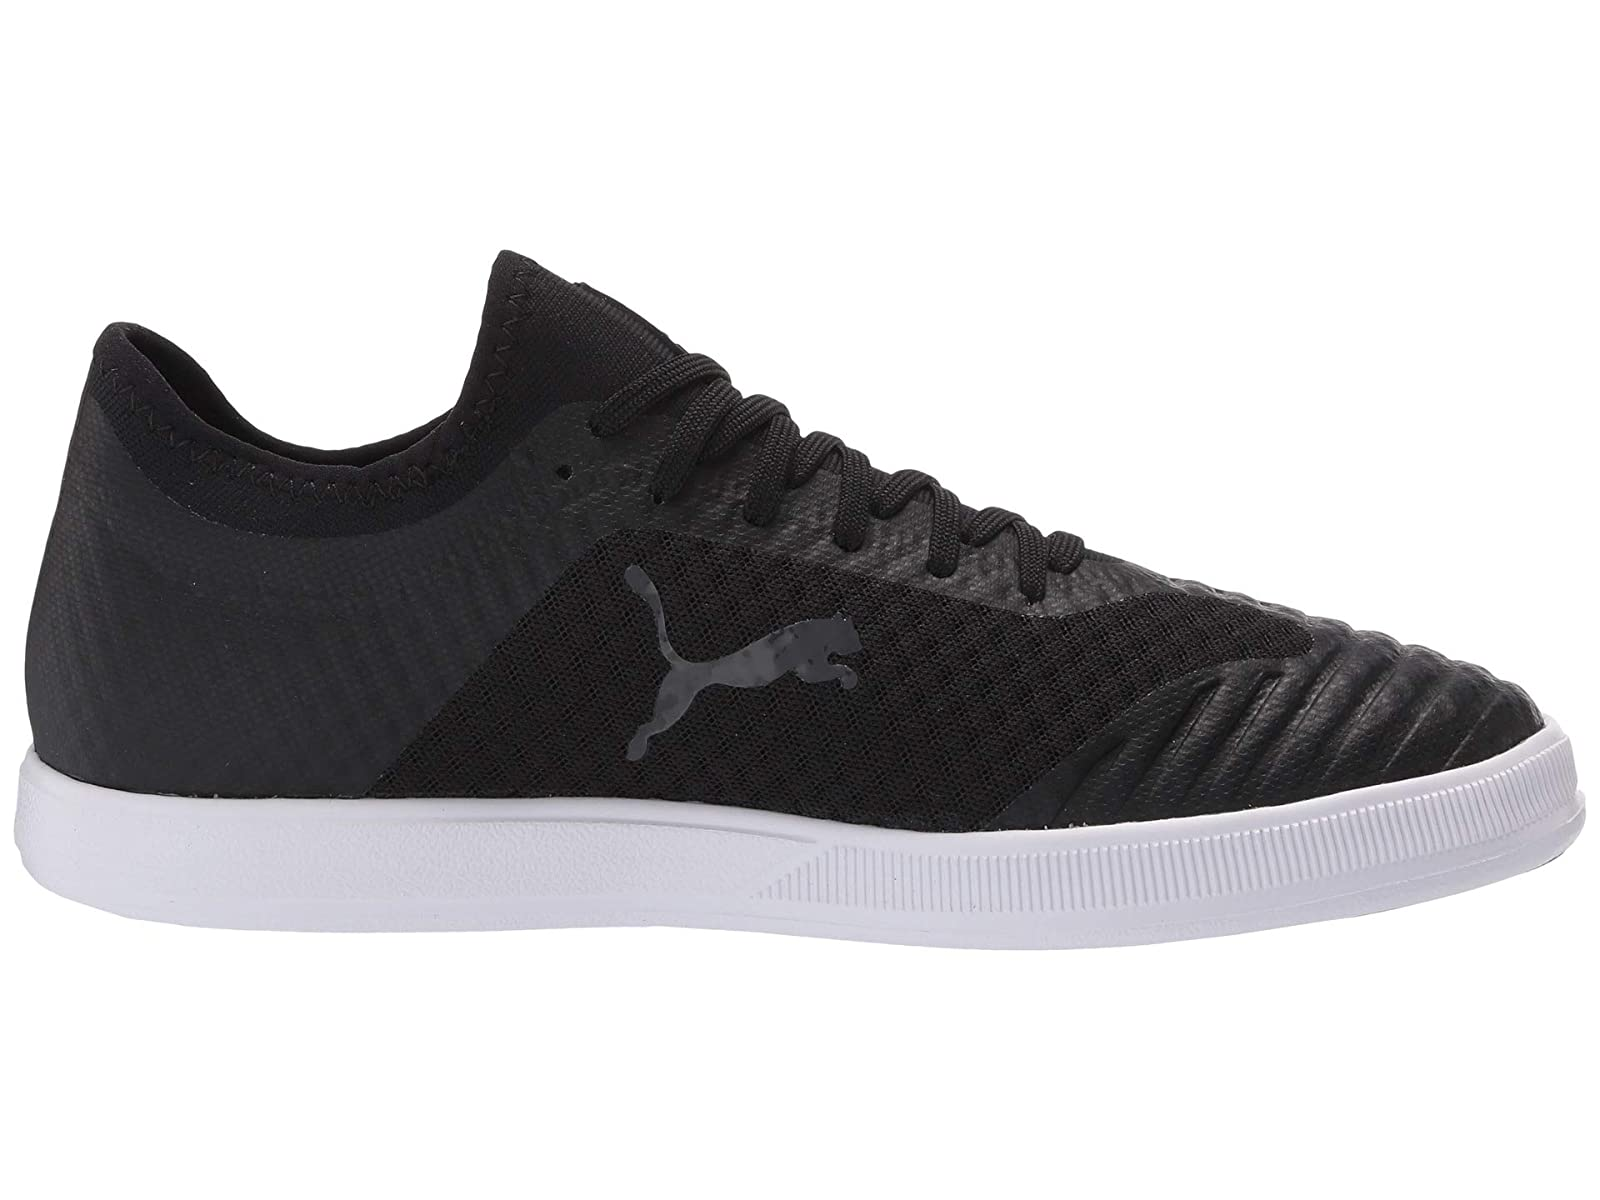 Man-039-s-Sneakers-amp-Athletic-Shoes-PUMA-365-Concrete-Lite thumbnail 14